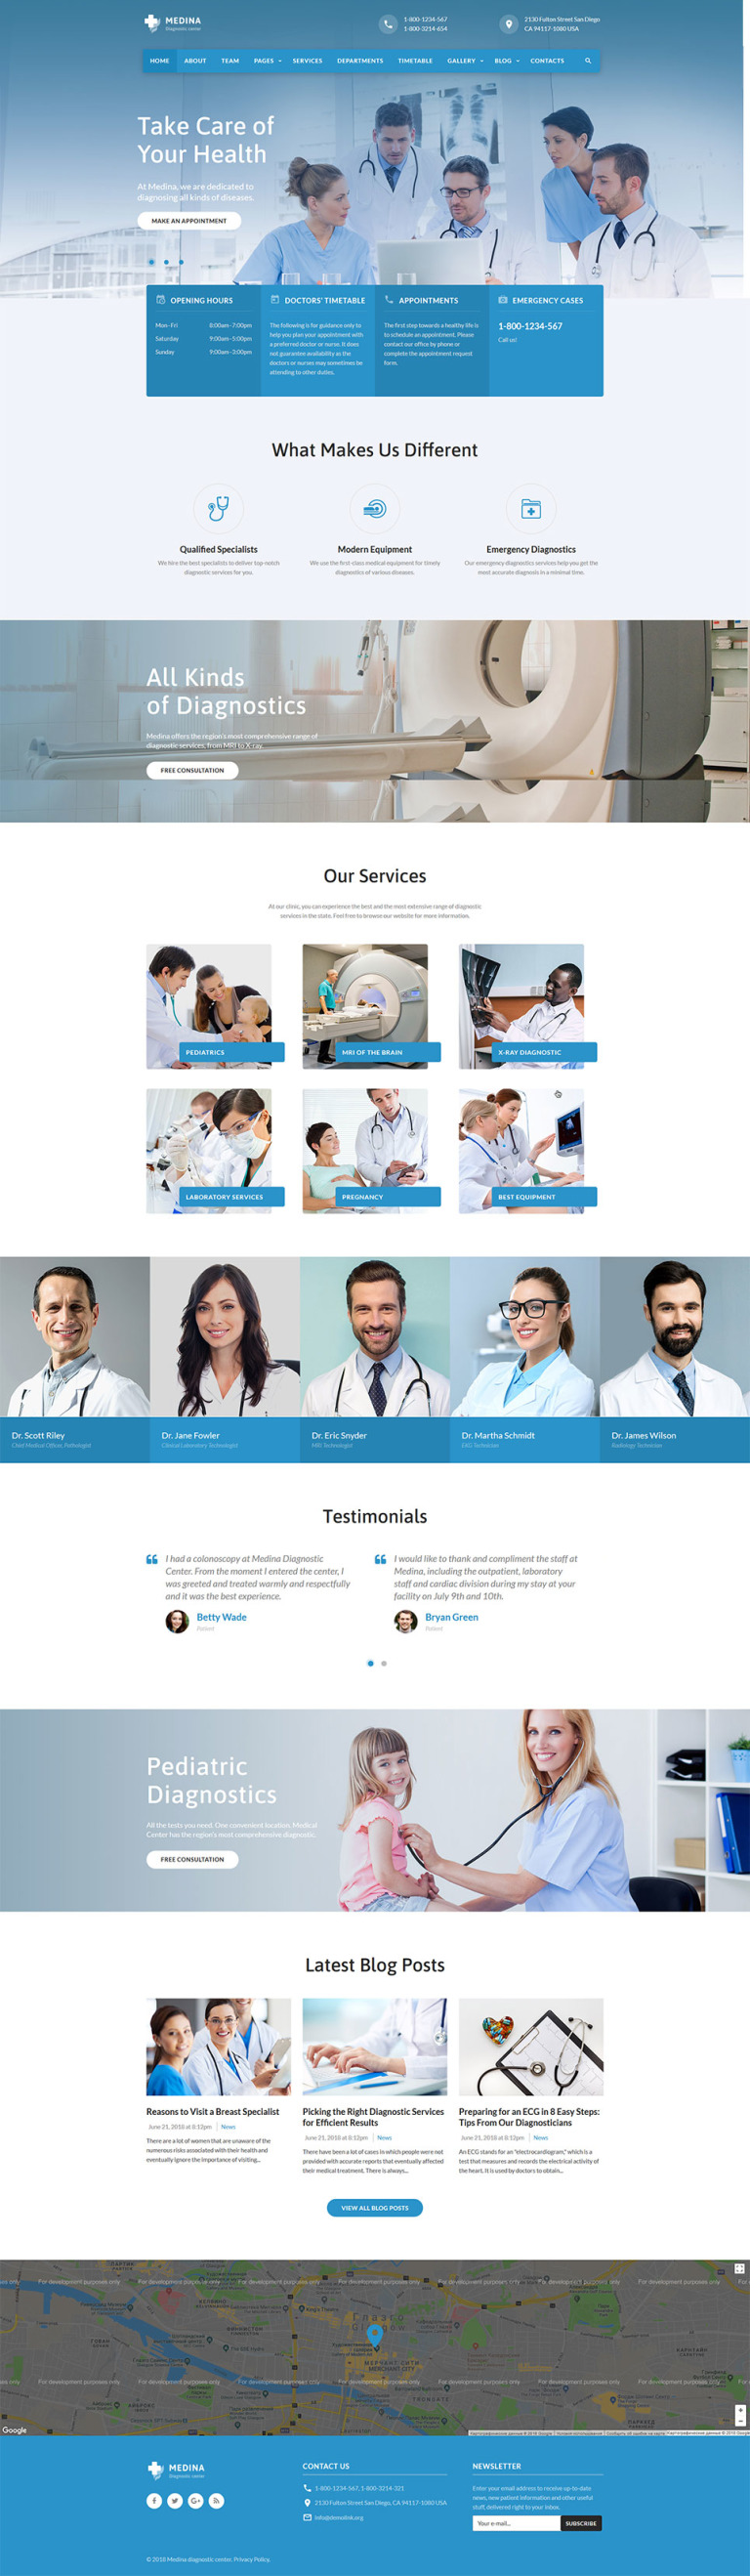 Medical Diagnostic Center Website Template New Screenshots BIG